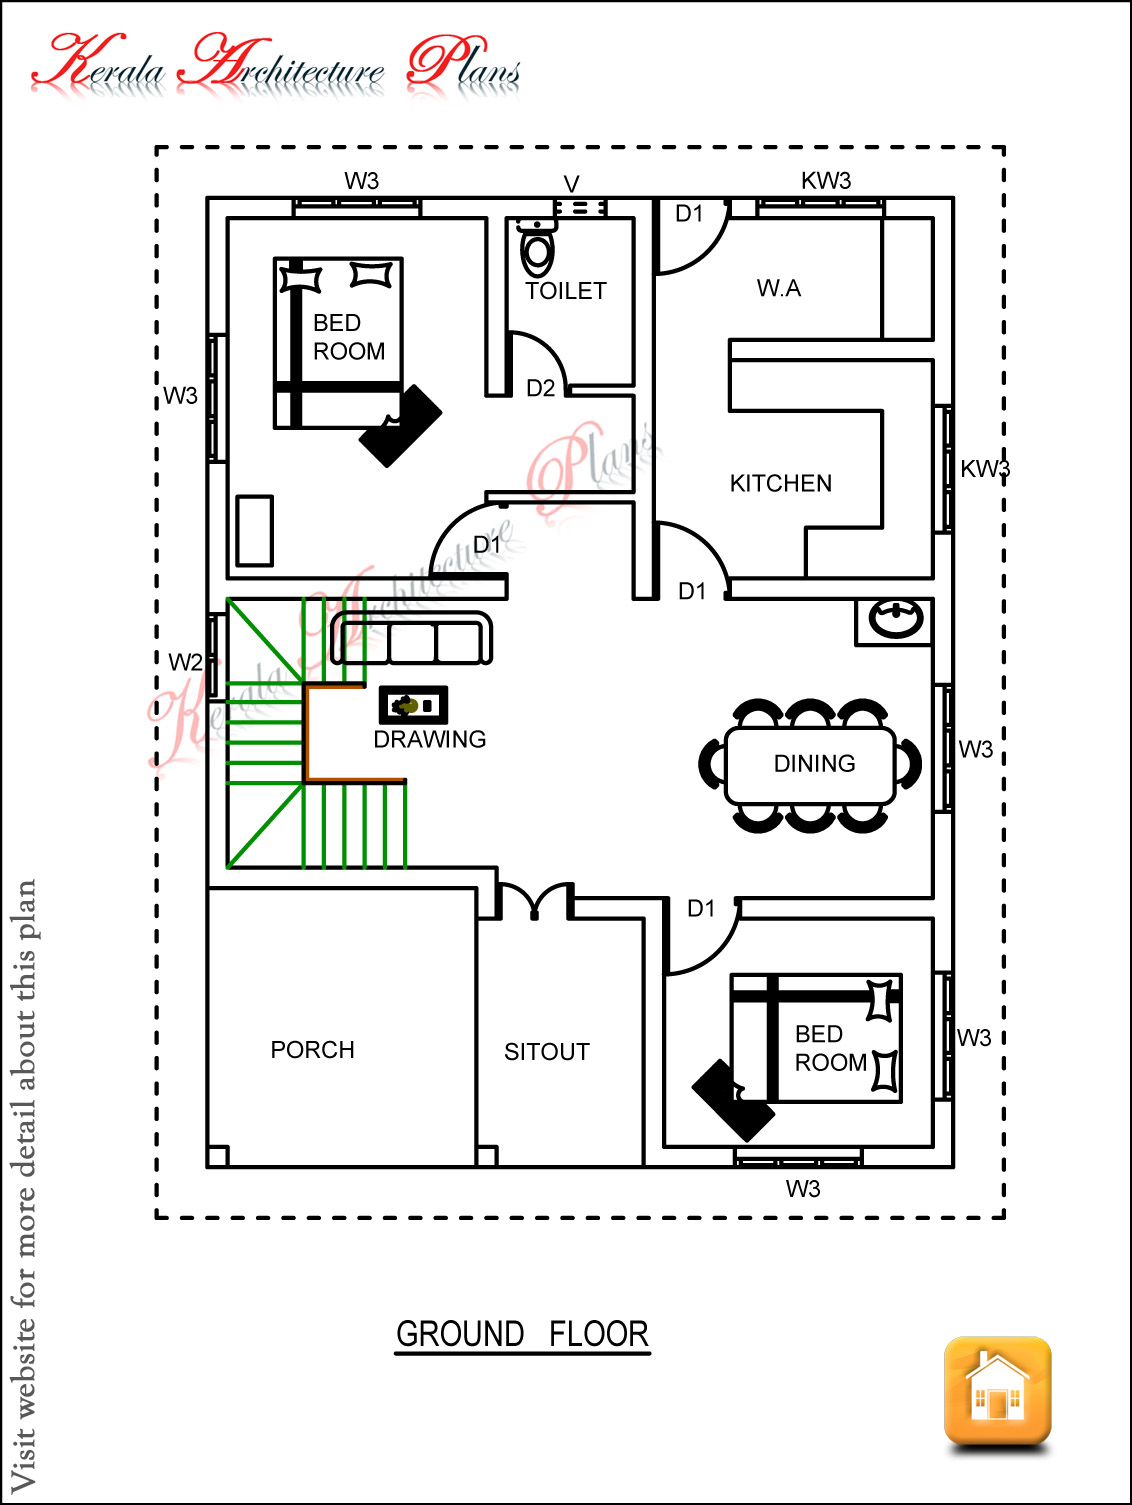 Three bedroom house plan architecture kerala for 3 bedroom house plans